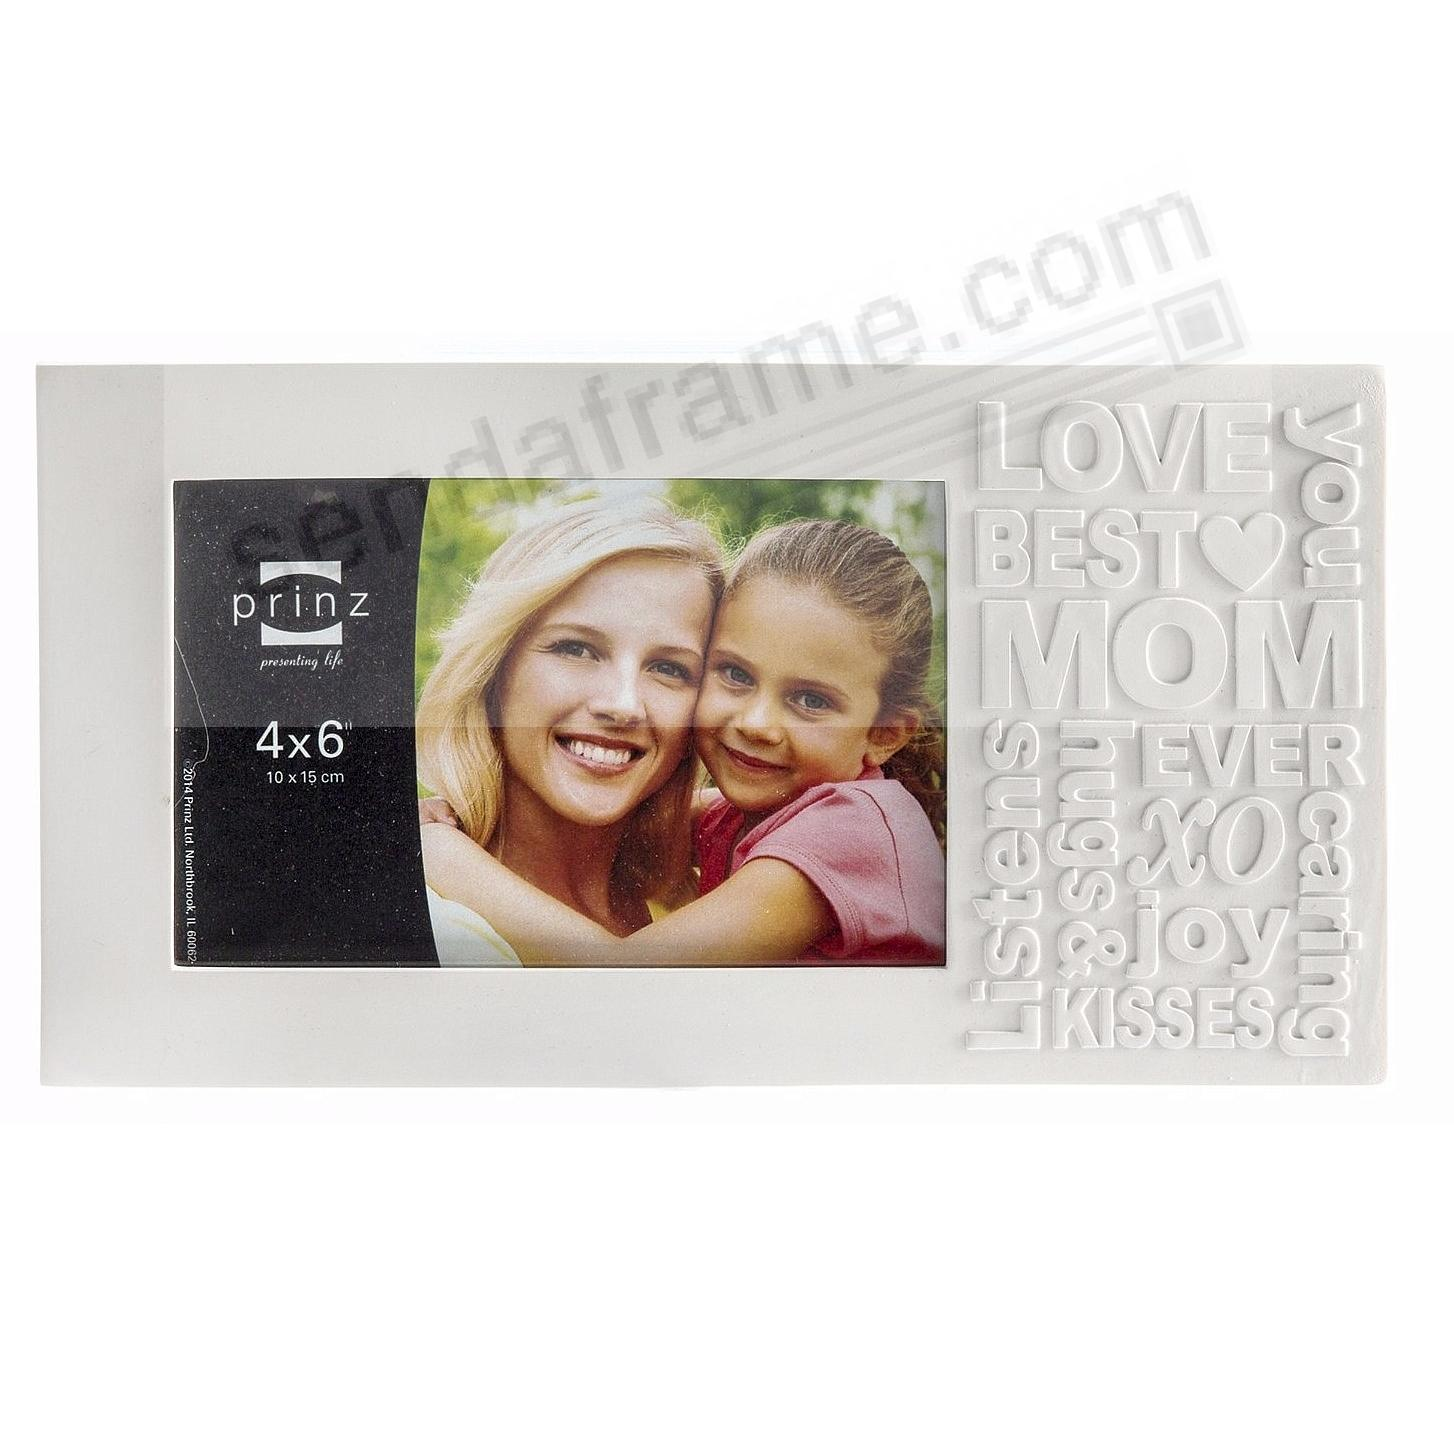 BEST MOM Typography Block Frame by Prinz® - Picture Frames, Photo ...